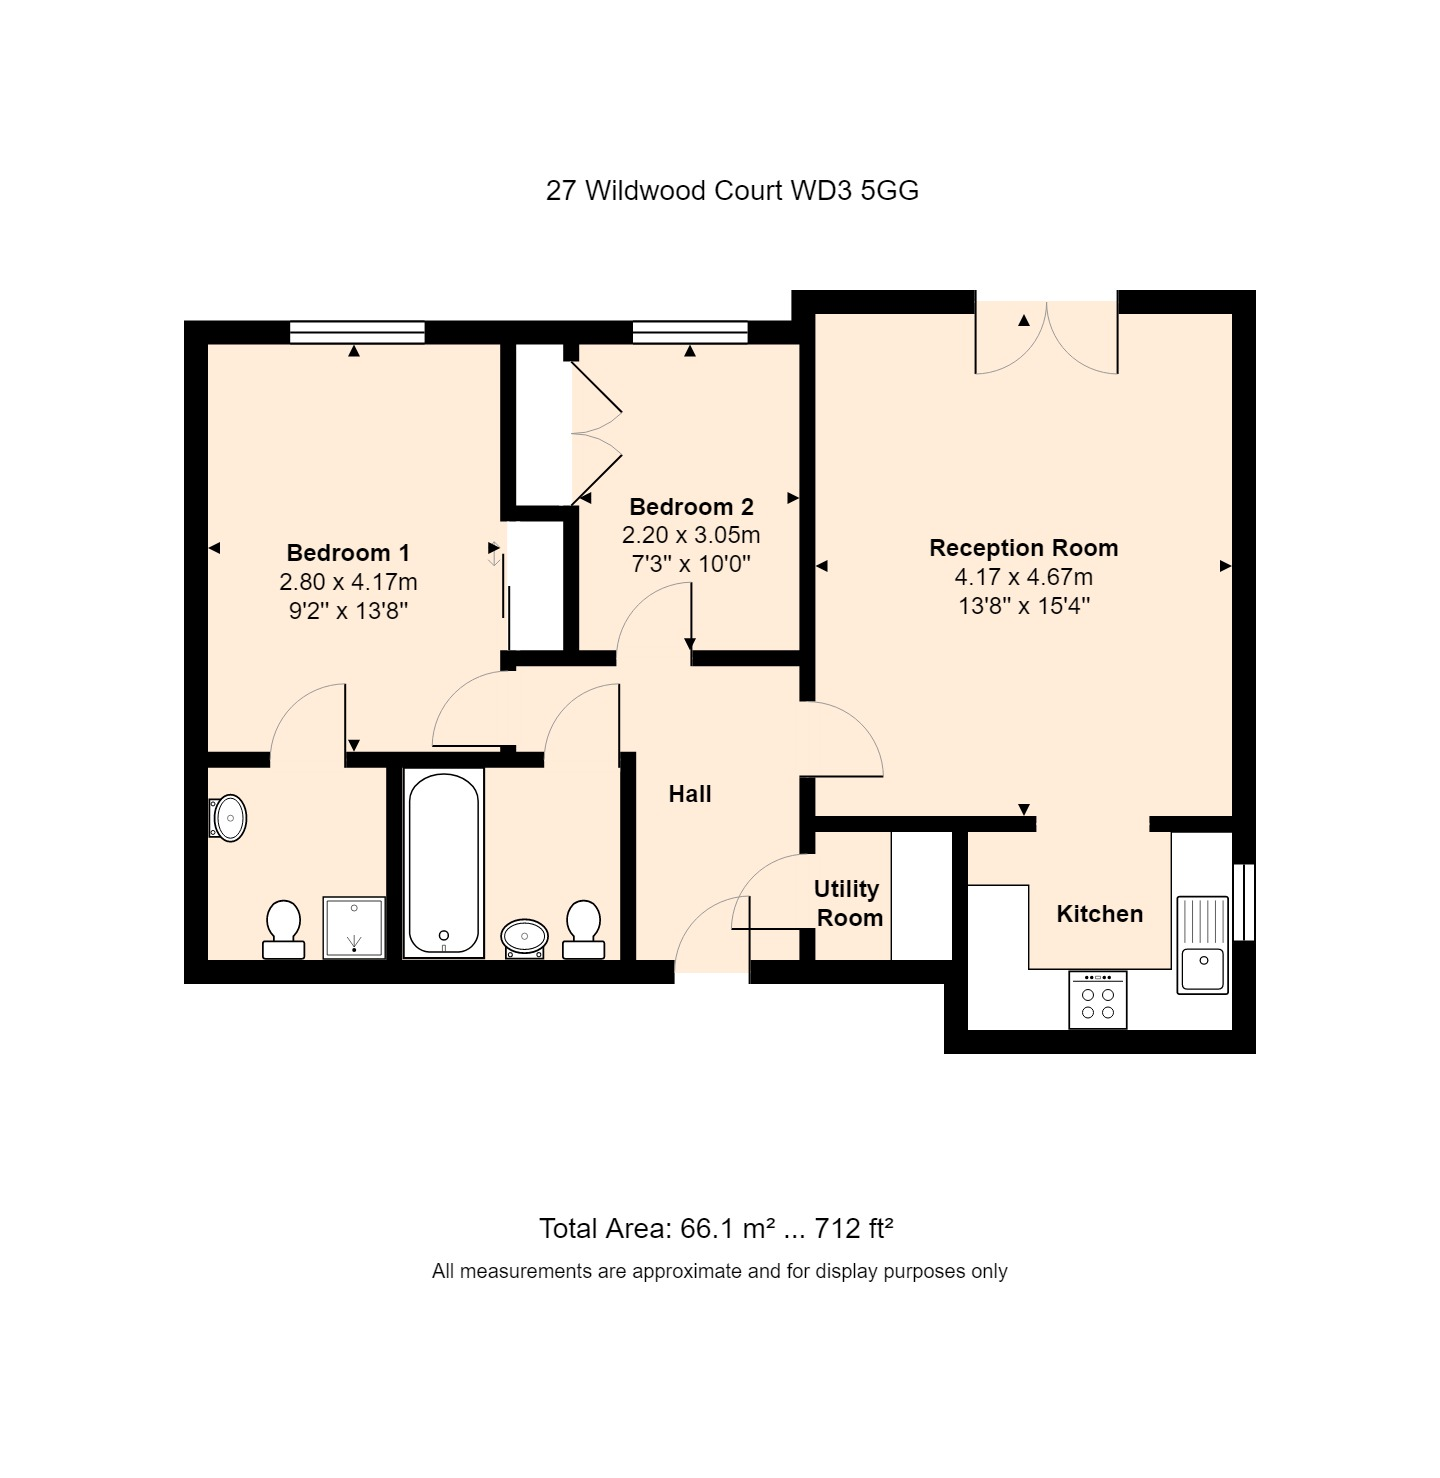 27 Wildwood Court Floorplan